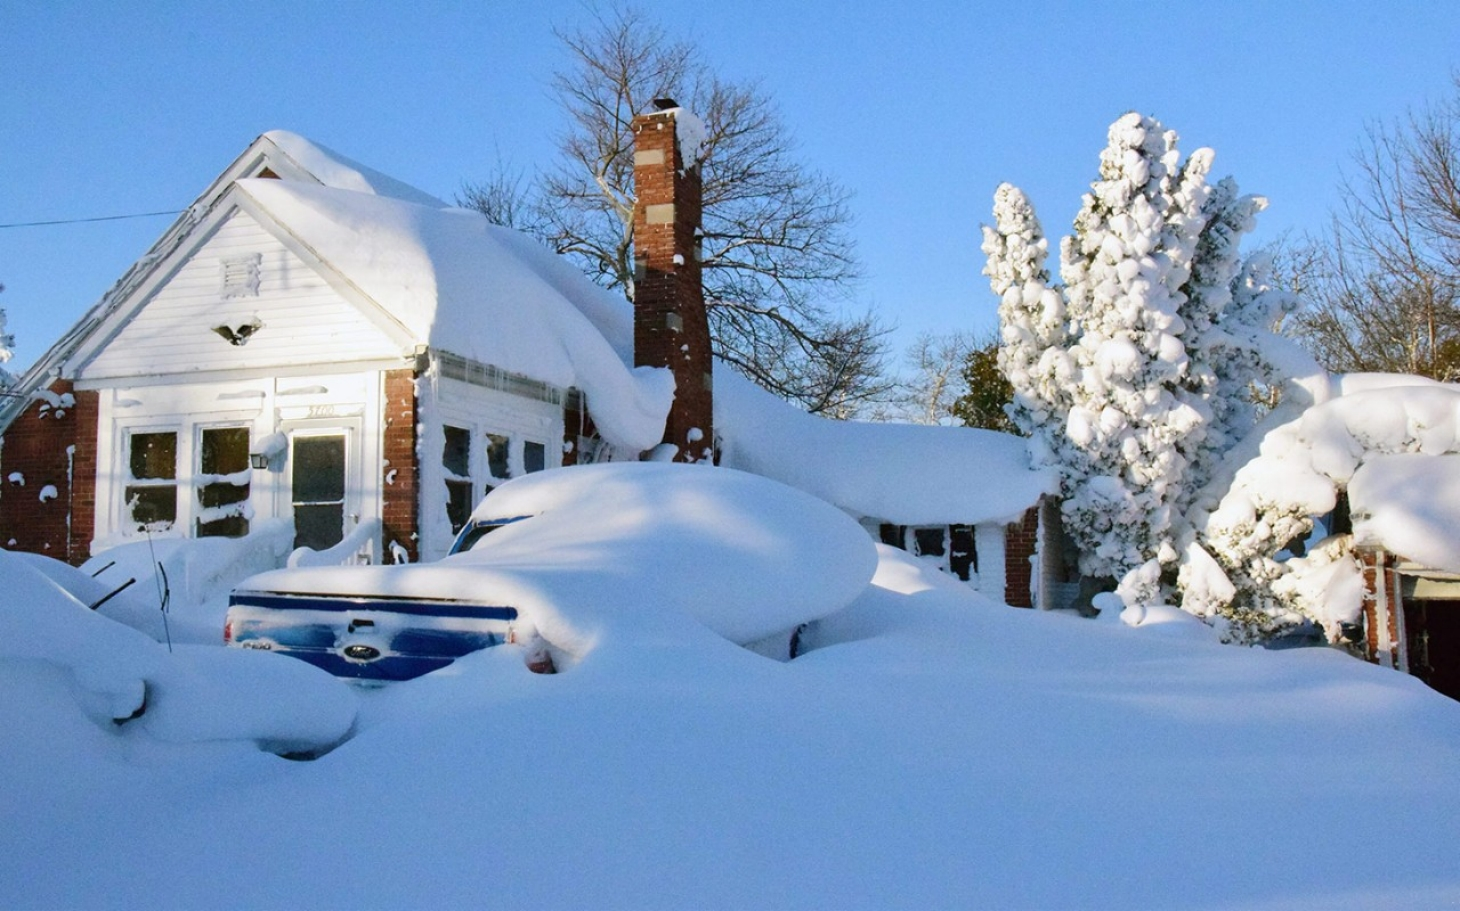 Live Winter Snow Fall Background Wallpaper Cold Snap Due To Climate Change Al Jazeera America